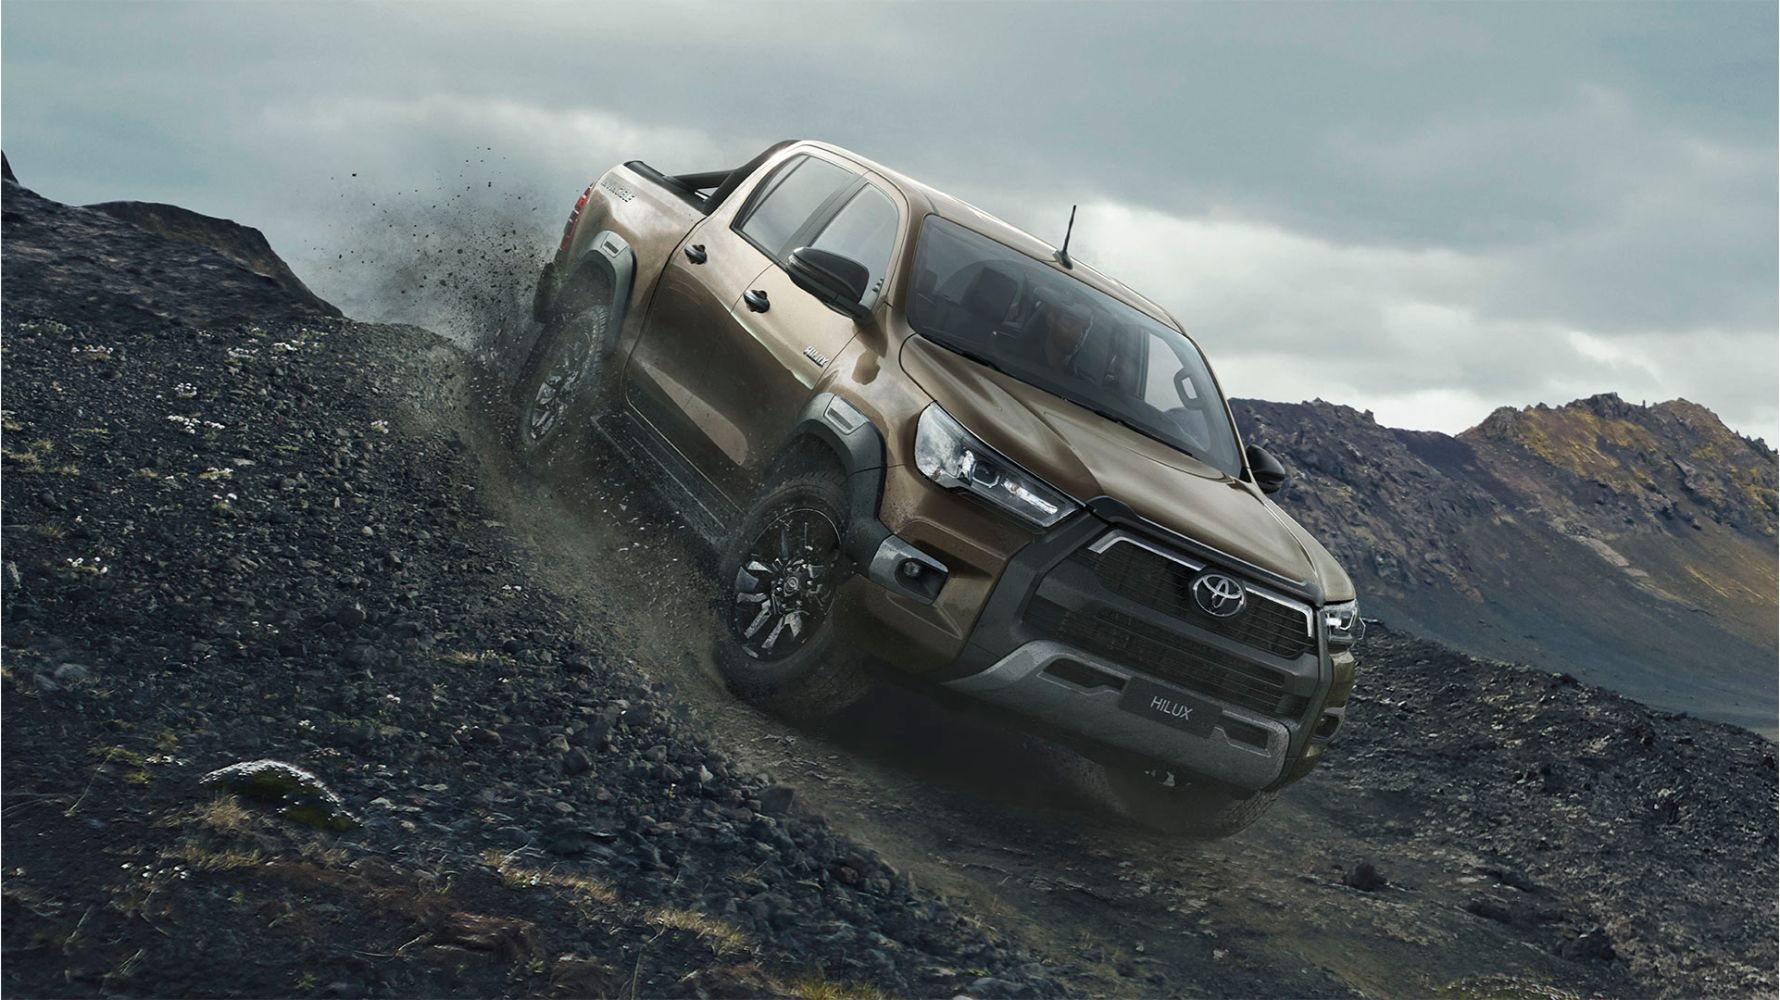 toyota_hilux_2020_gallery_02_full_tcm_3046_2017443